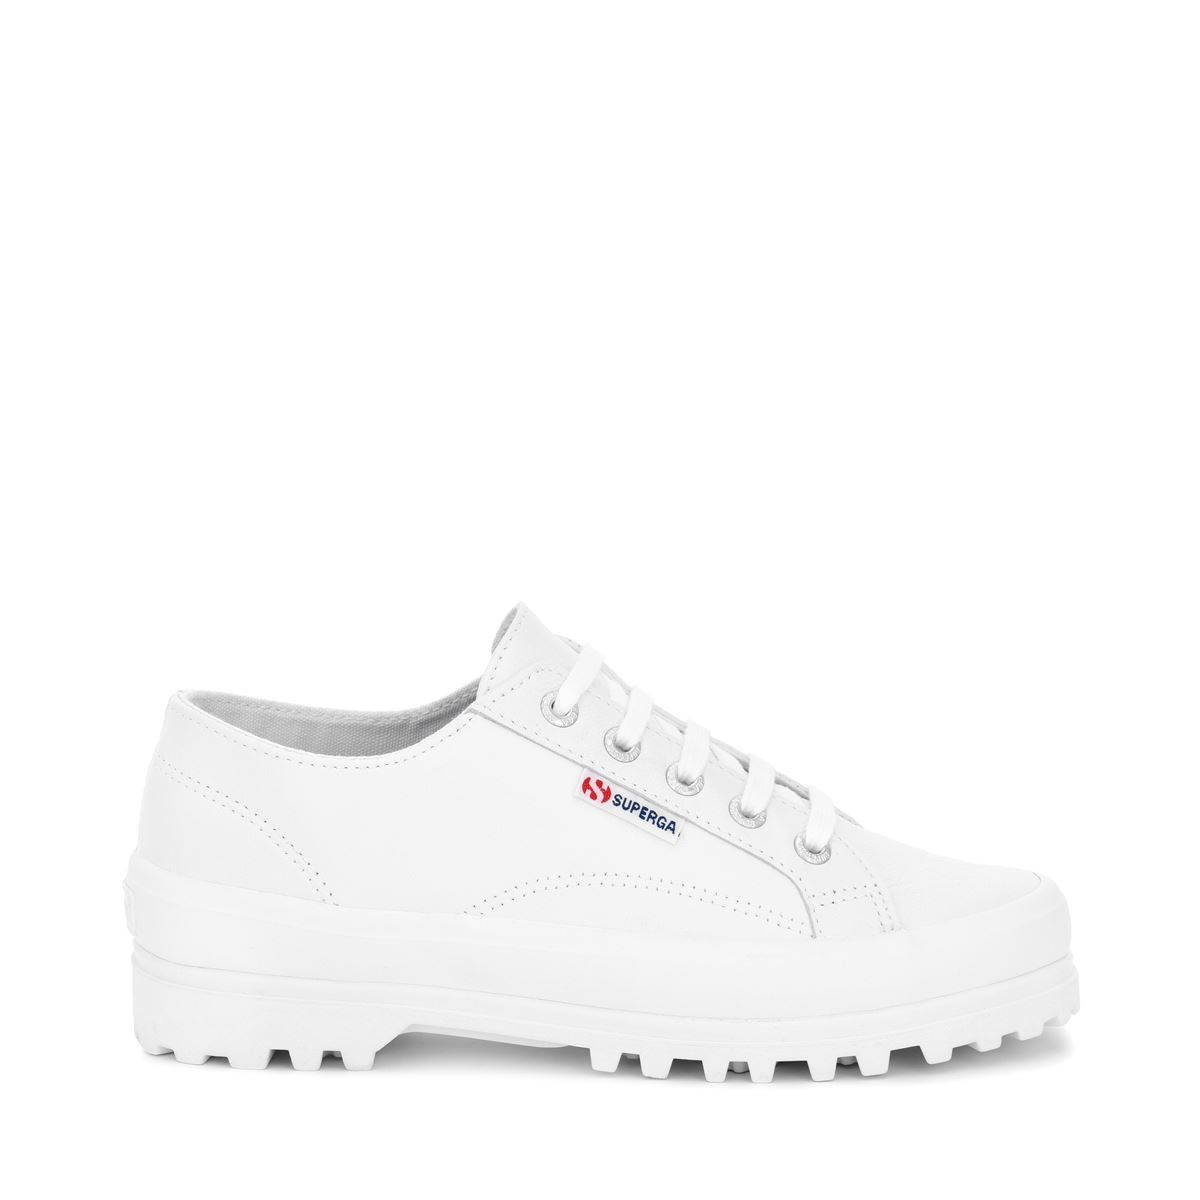 Italian Sneakers Superga for men and women-S111DSW